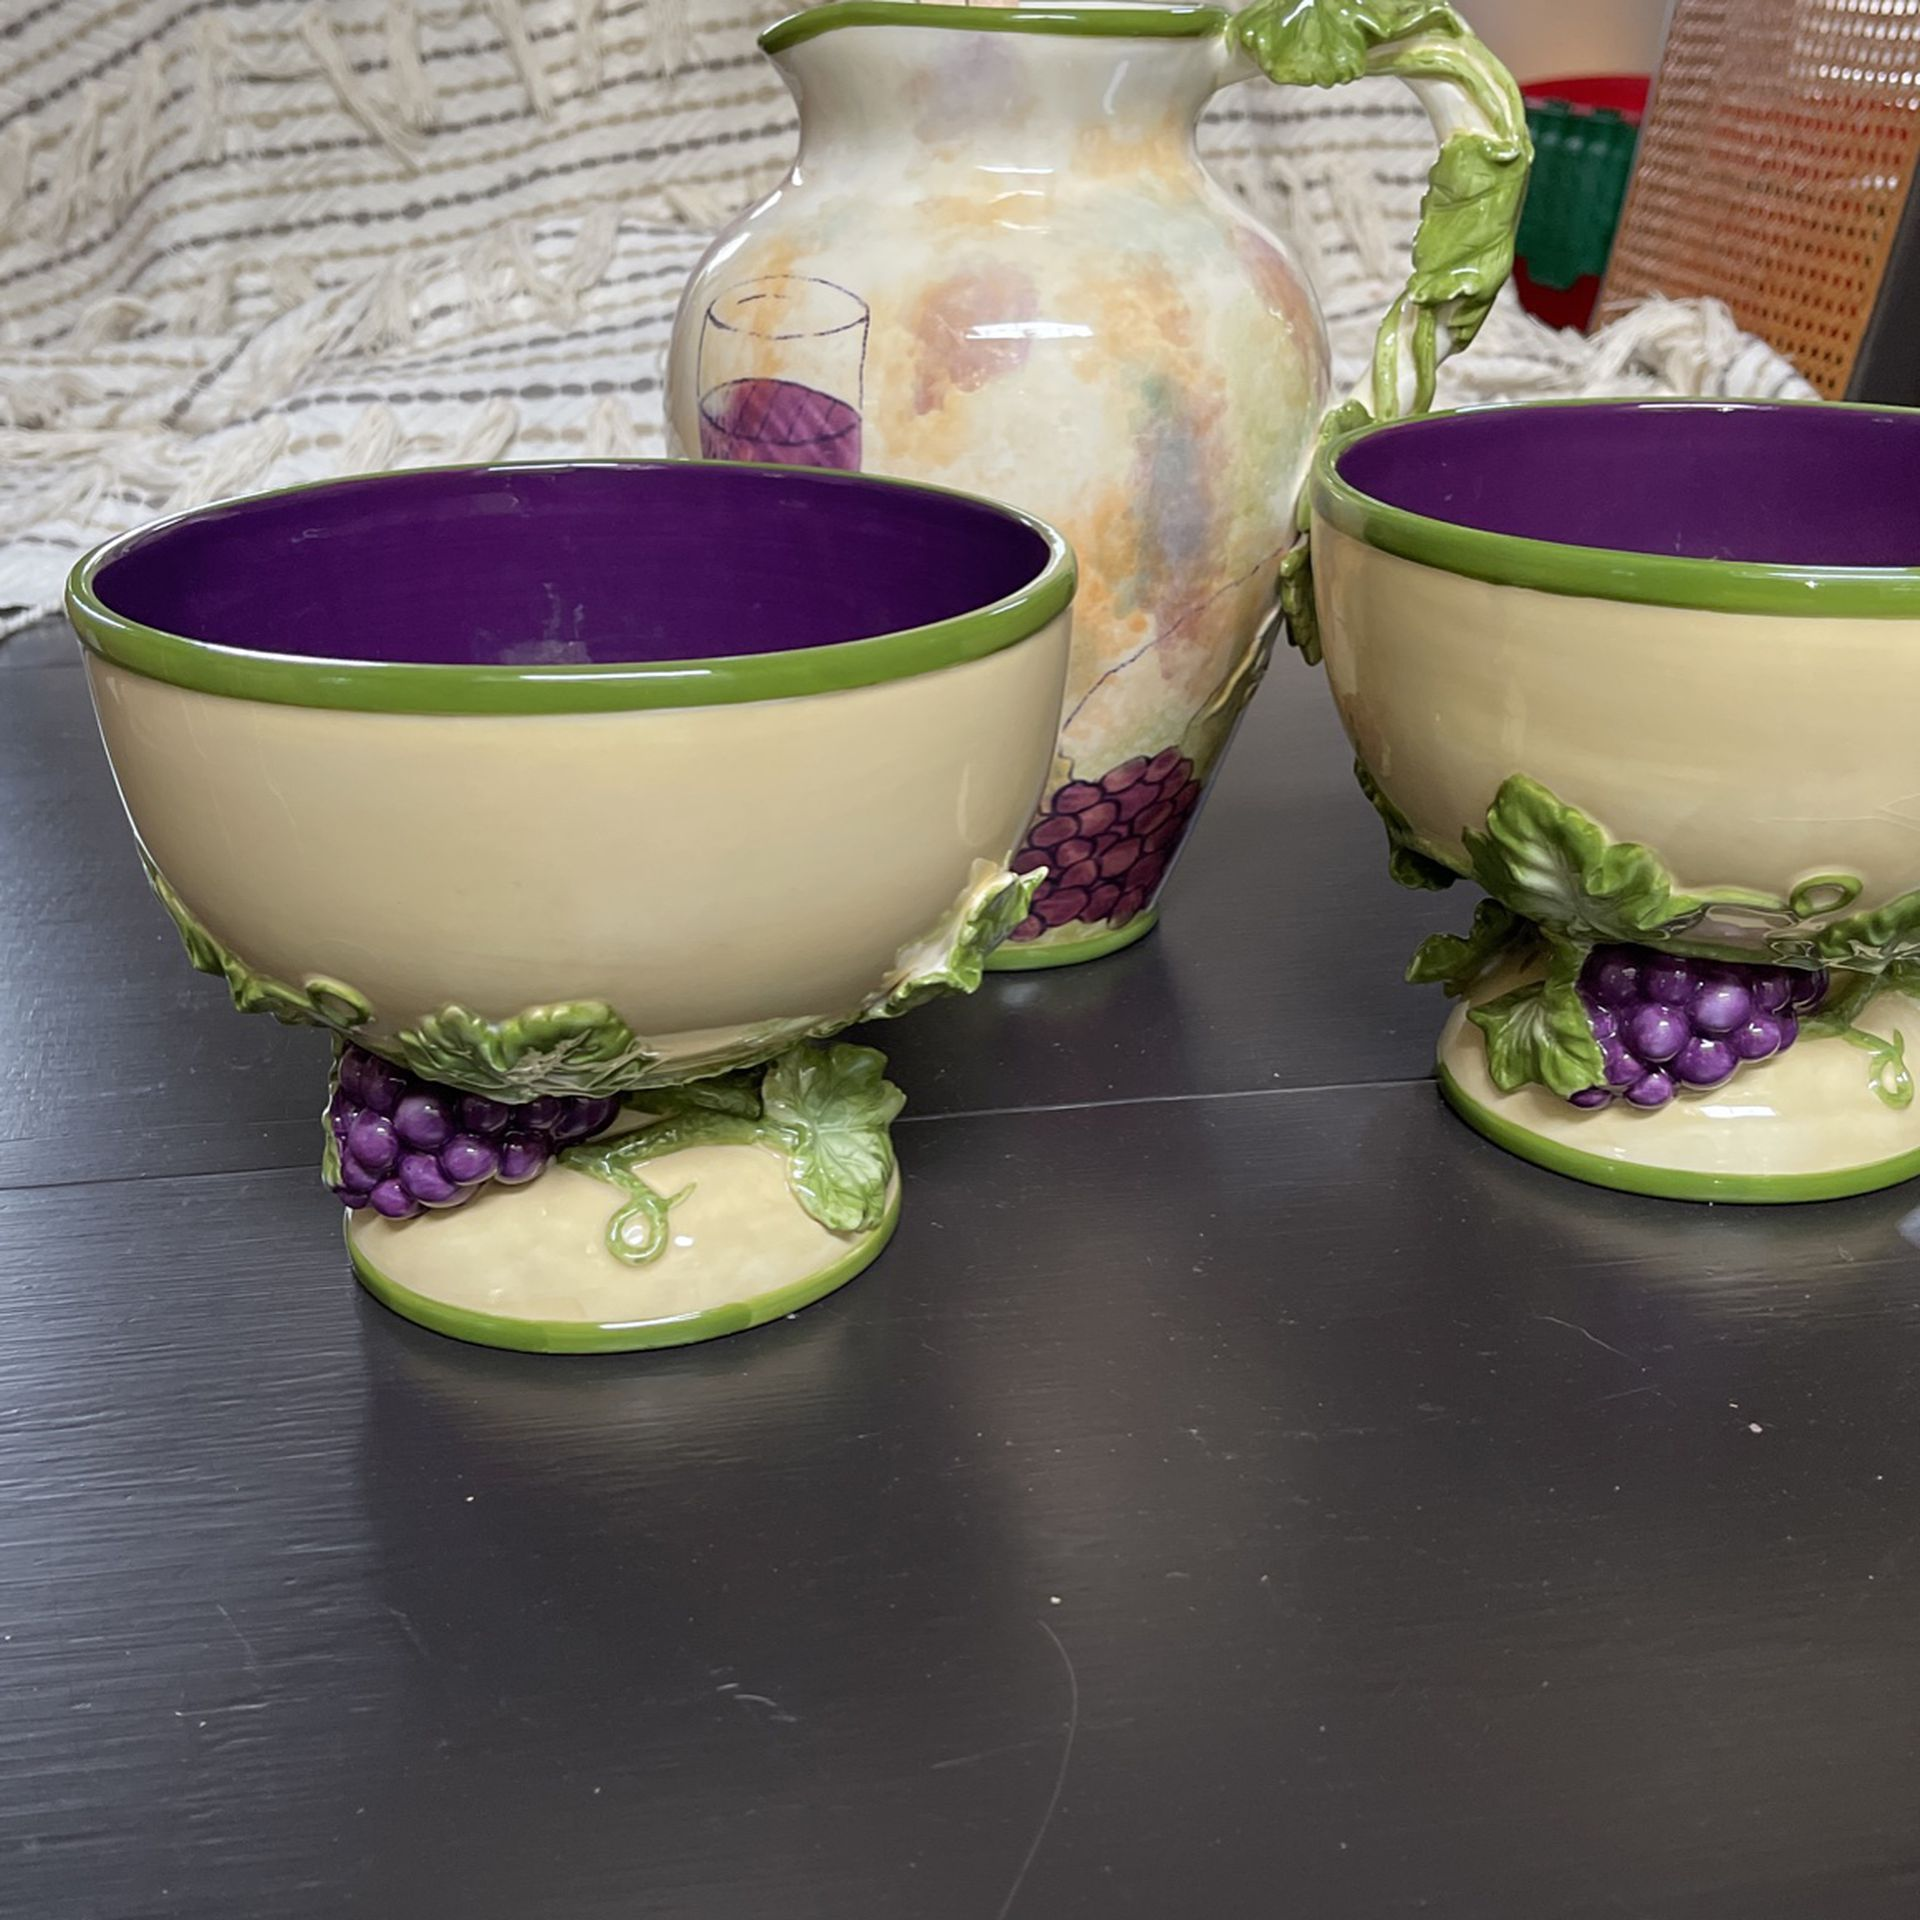 Salad Bowls and Water Pitcher